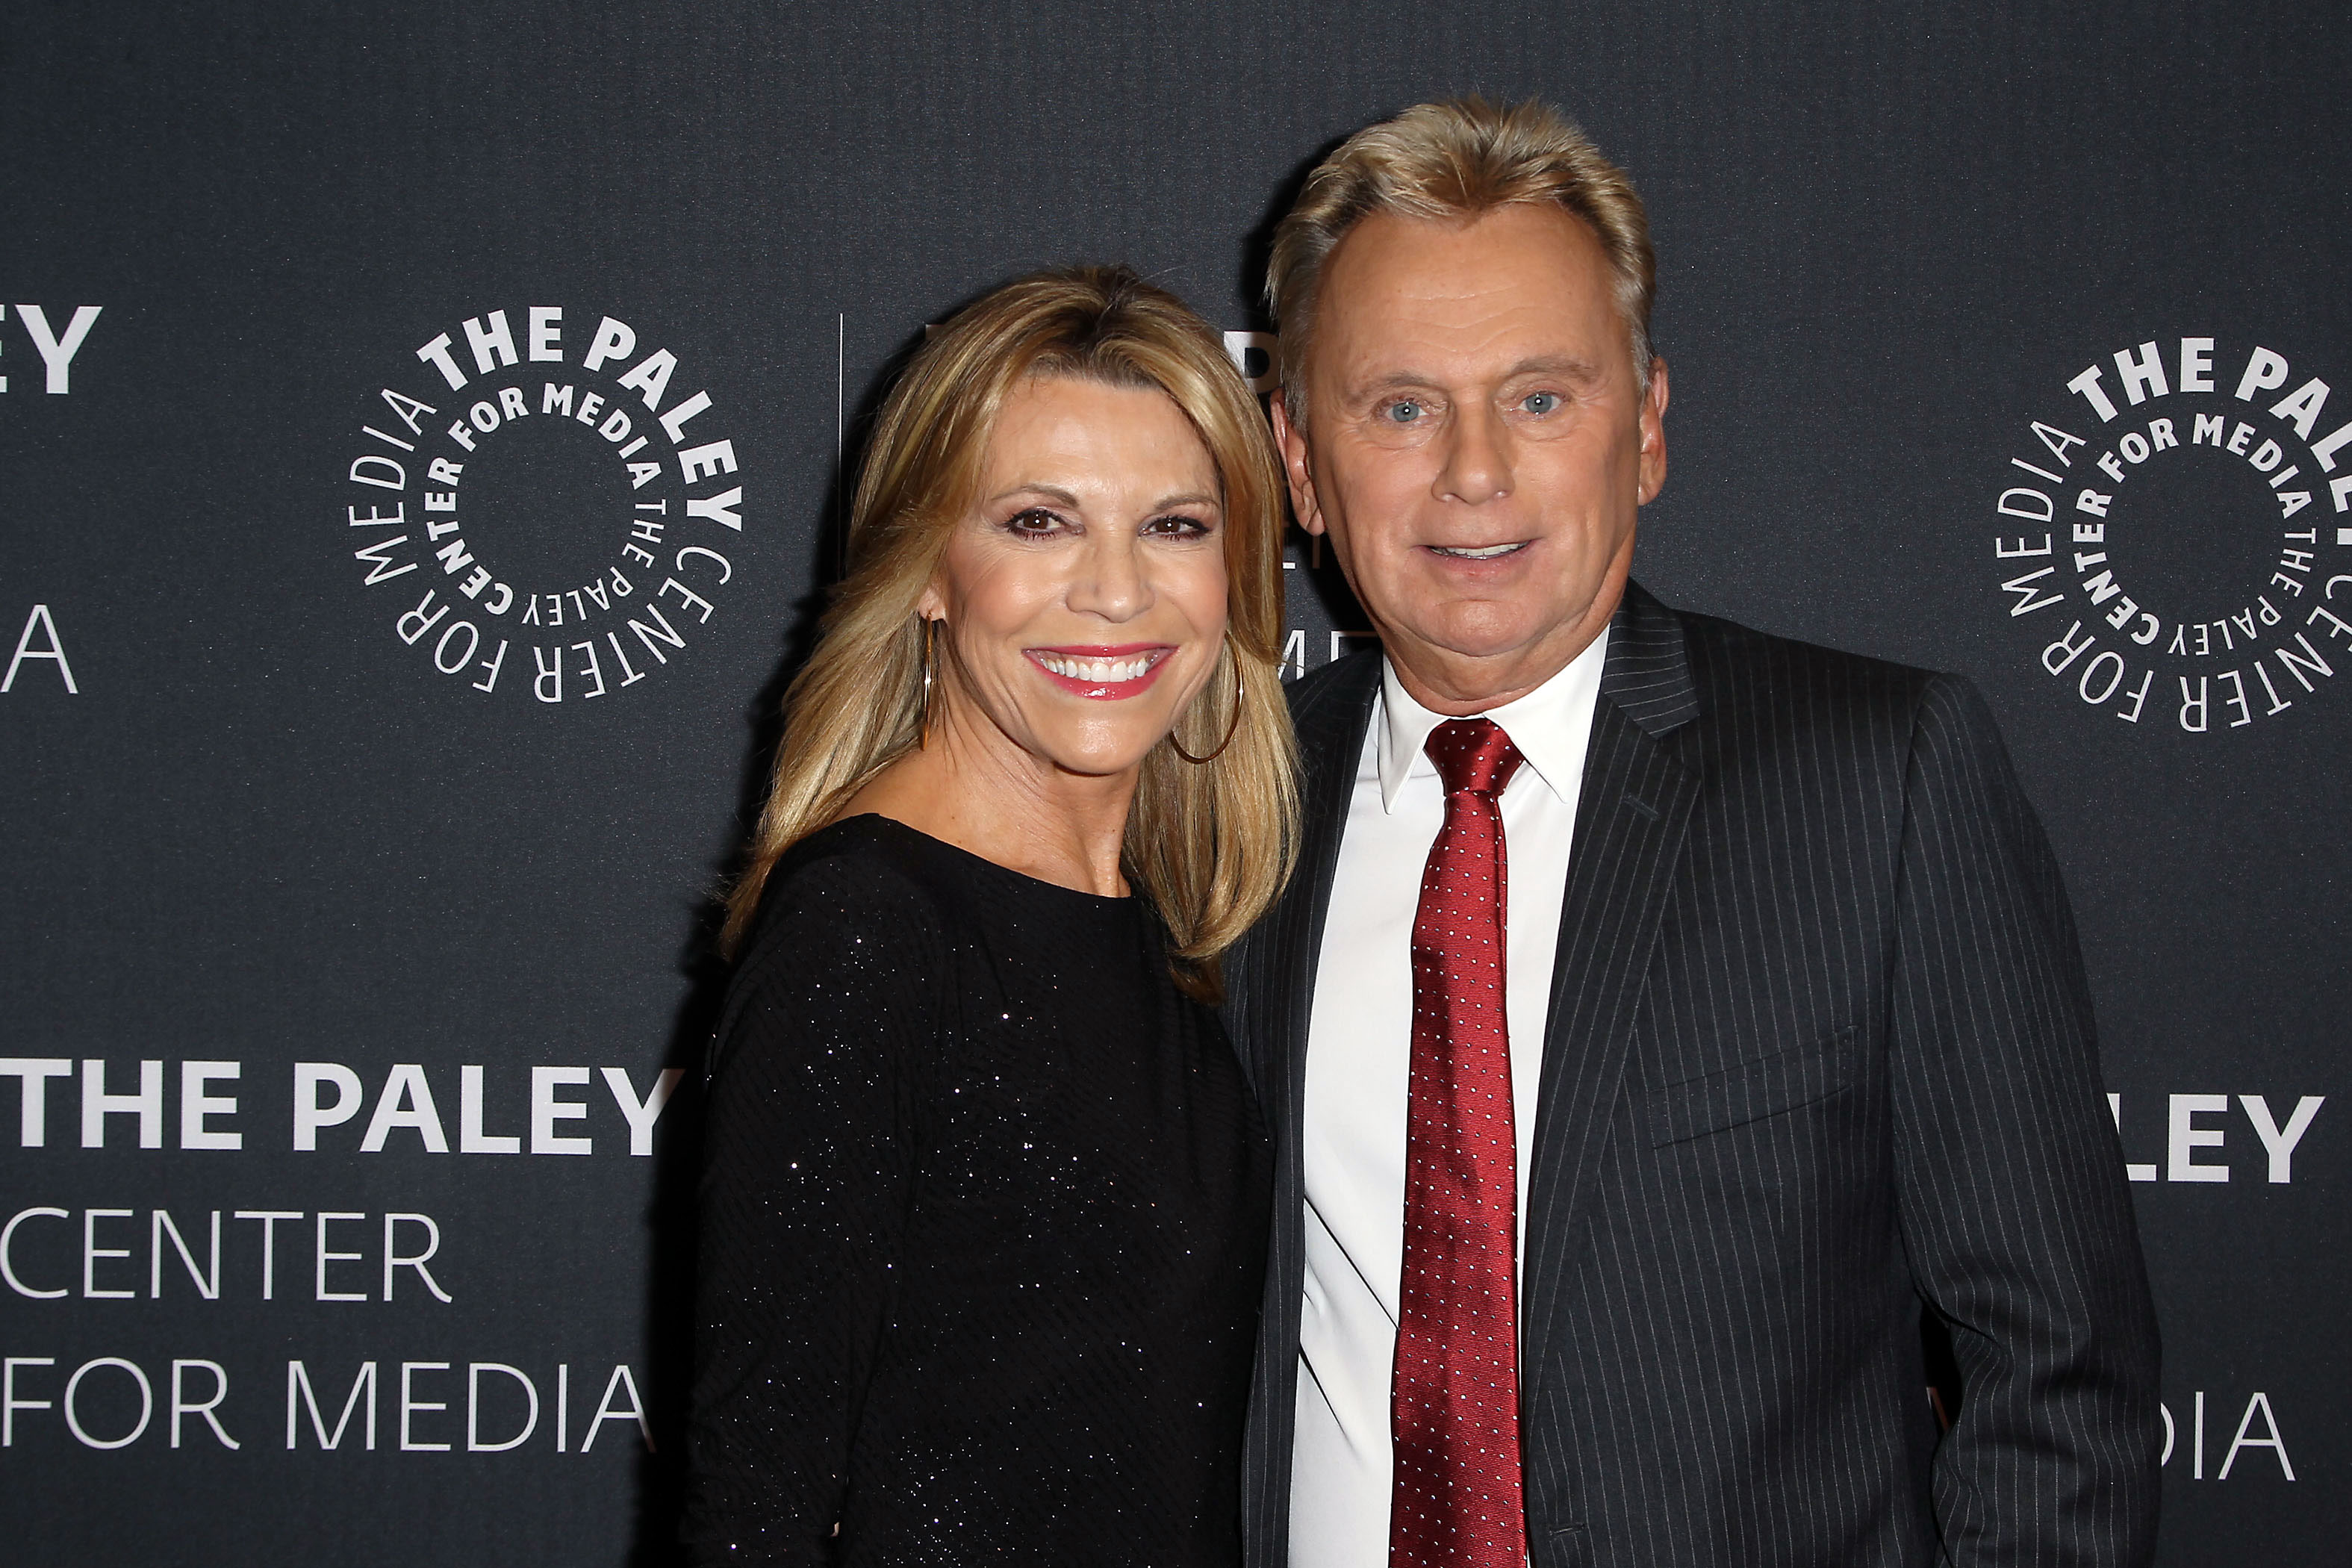 Vanna White Hosts 'Wheel of Fortune' for the 1st Time in 37 Years After Pat Sajak's Emergency Surgery